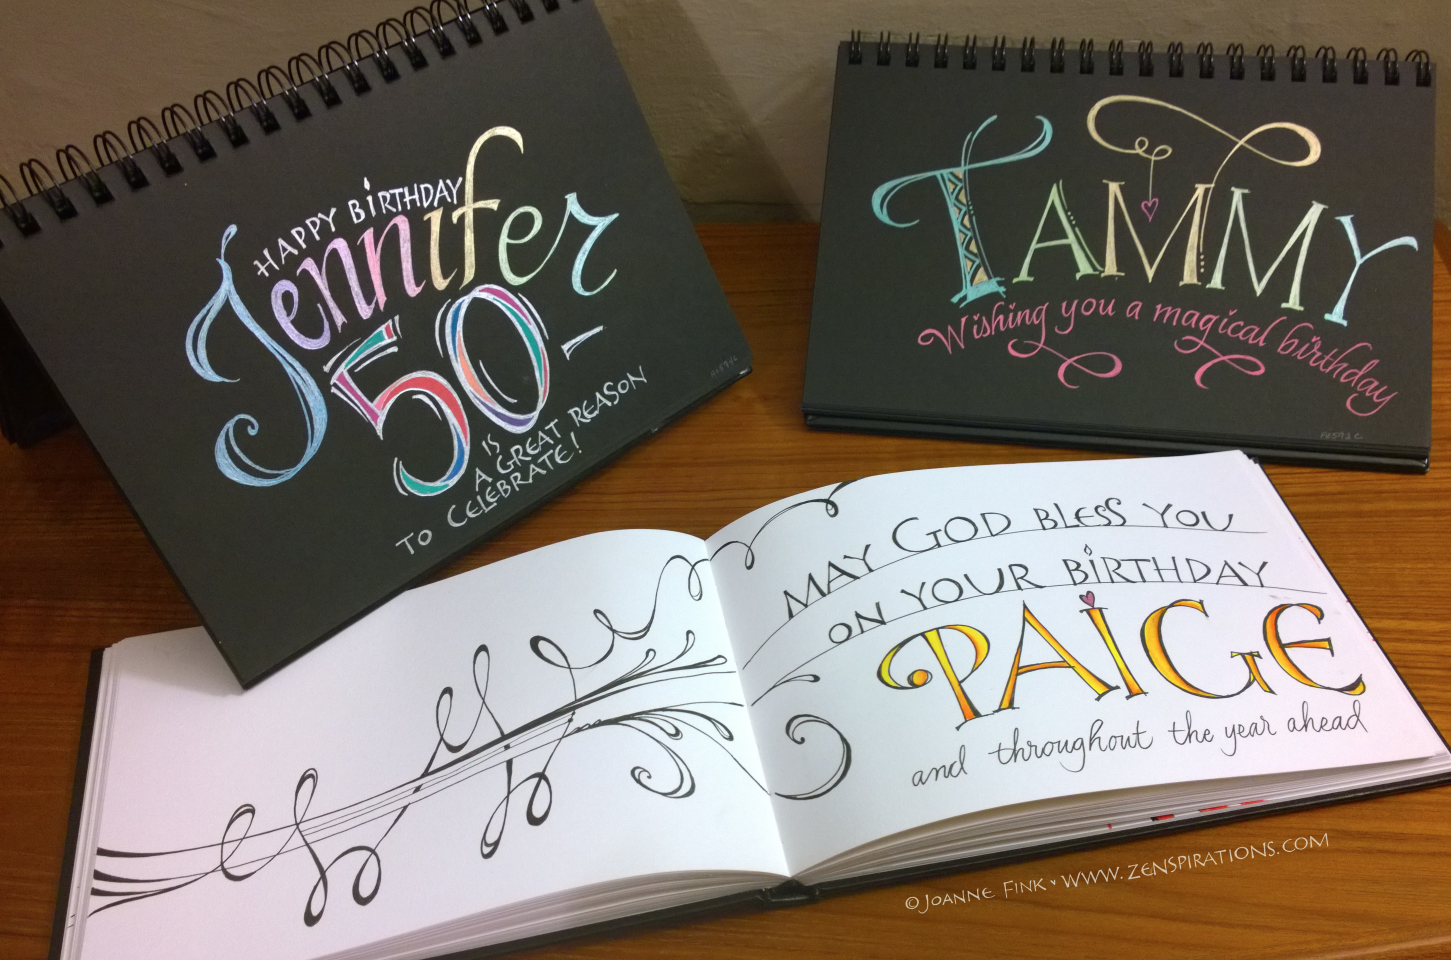 Check out the cool Celebration Journals on this week's Zenspirations - BLOG